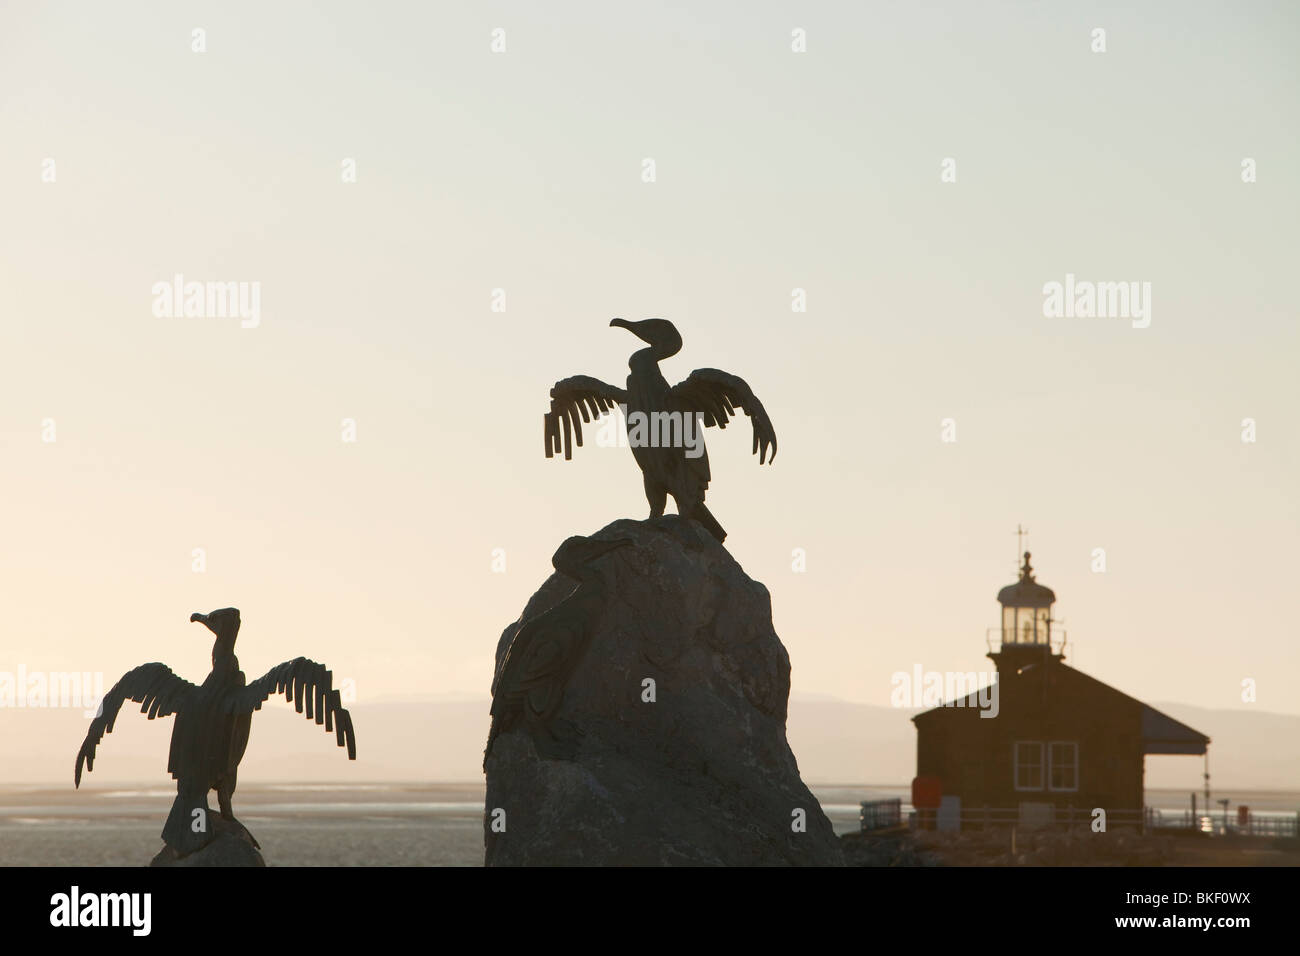 Cormorant statues on Morecambe's sea front promenade as part of the Tern project, a regeneration project. - Stock Image